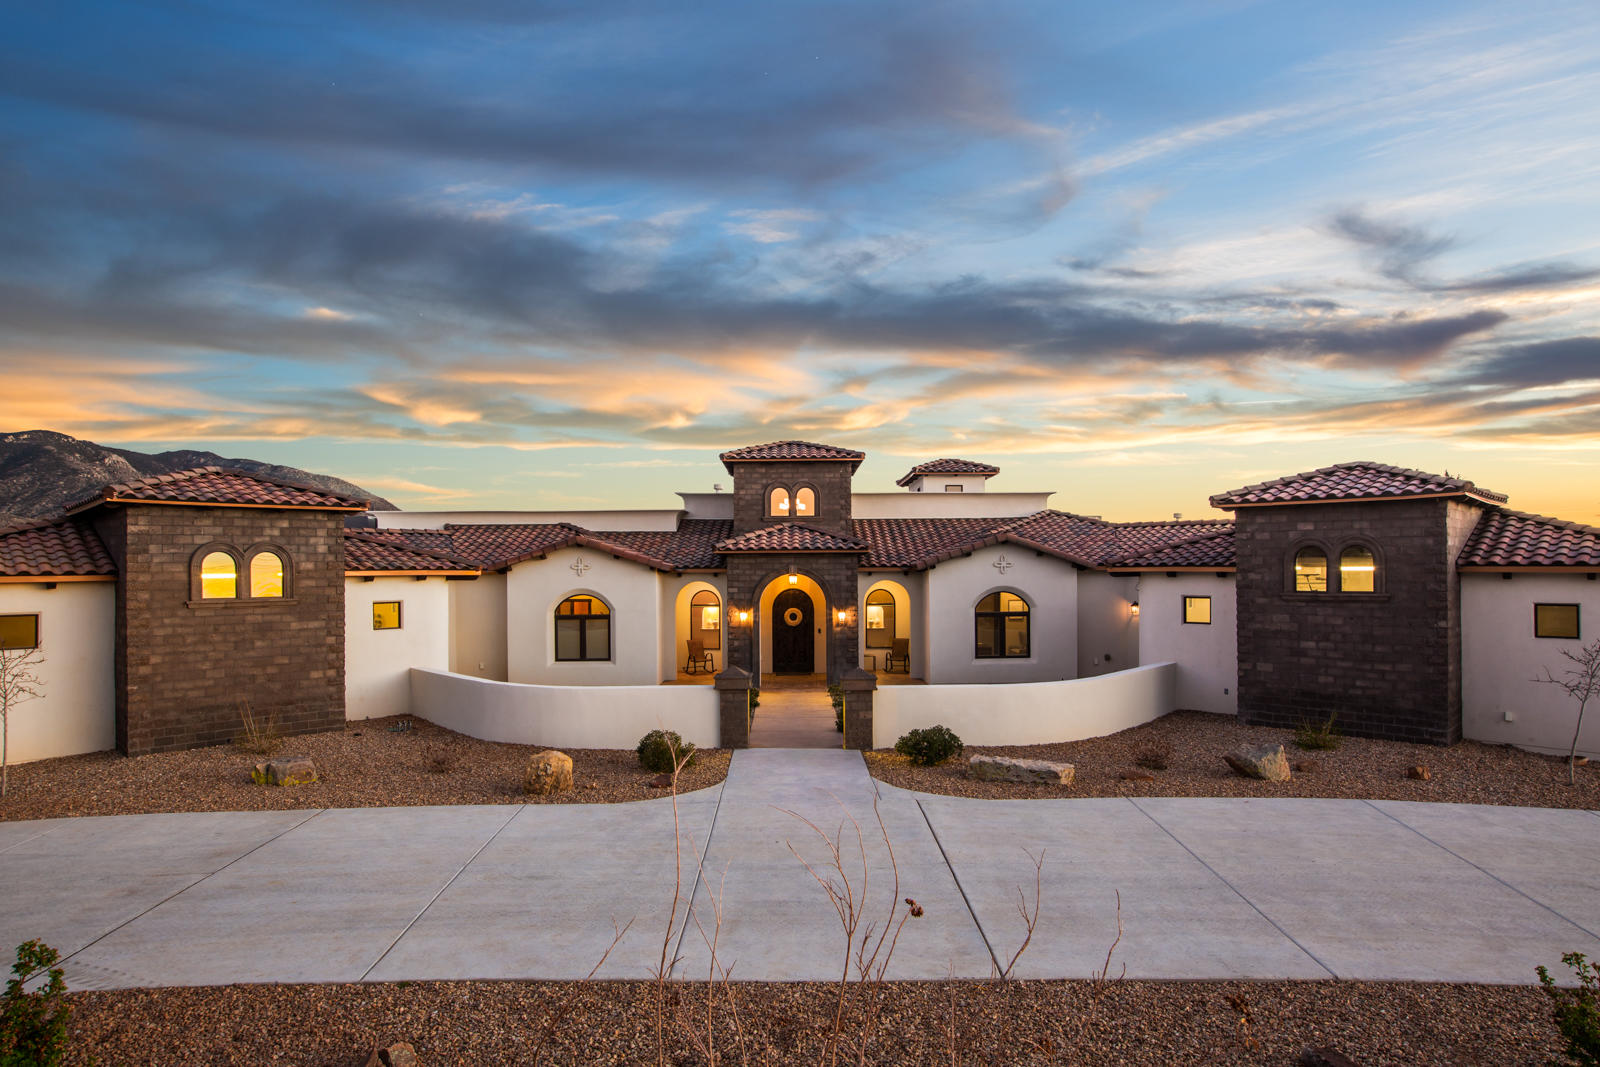 Luxurious Mediterranean Estate located in the prestigious North Albuquerque Acres on a gated .89 acre property. Quality of taste abounds the expansive floorplan hosting 4,662sf, 4 bedrooms, 3 baths, 2 living areas, office, gym and 4 car garage.  Fully equipped Chef's kitchen w/ designer cabinetry, granite countertops, built-in oven/microwave, 6 burner gas cooktop, pot filler and a family style island with seating. Dining with custom built in bench. Living area w/ beautiful ceilings and a custom fireplace. Glamorous master retreat with 2 sided fireplace!  Spa-like bath w/ his/hers vanities, custom mirrors, free standing tub, fireplace, walk-in shower with dual heads. Boutique style closet with dressing area, island and washer/dryer! Covered patio w/ outdoor kitchen & fireplace with views